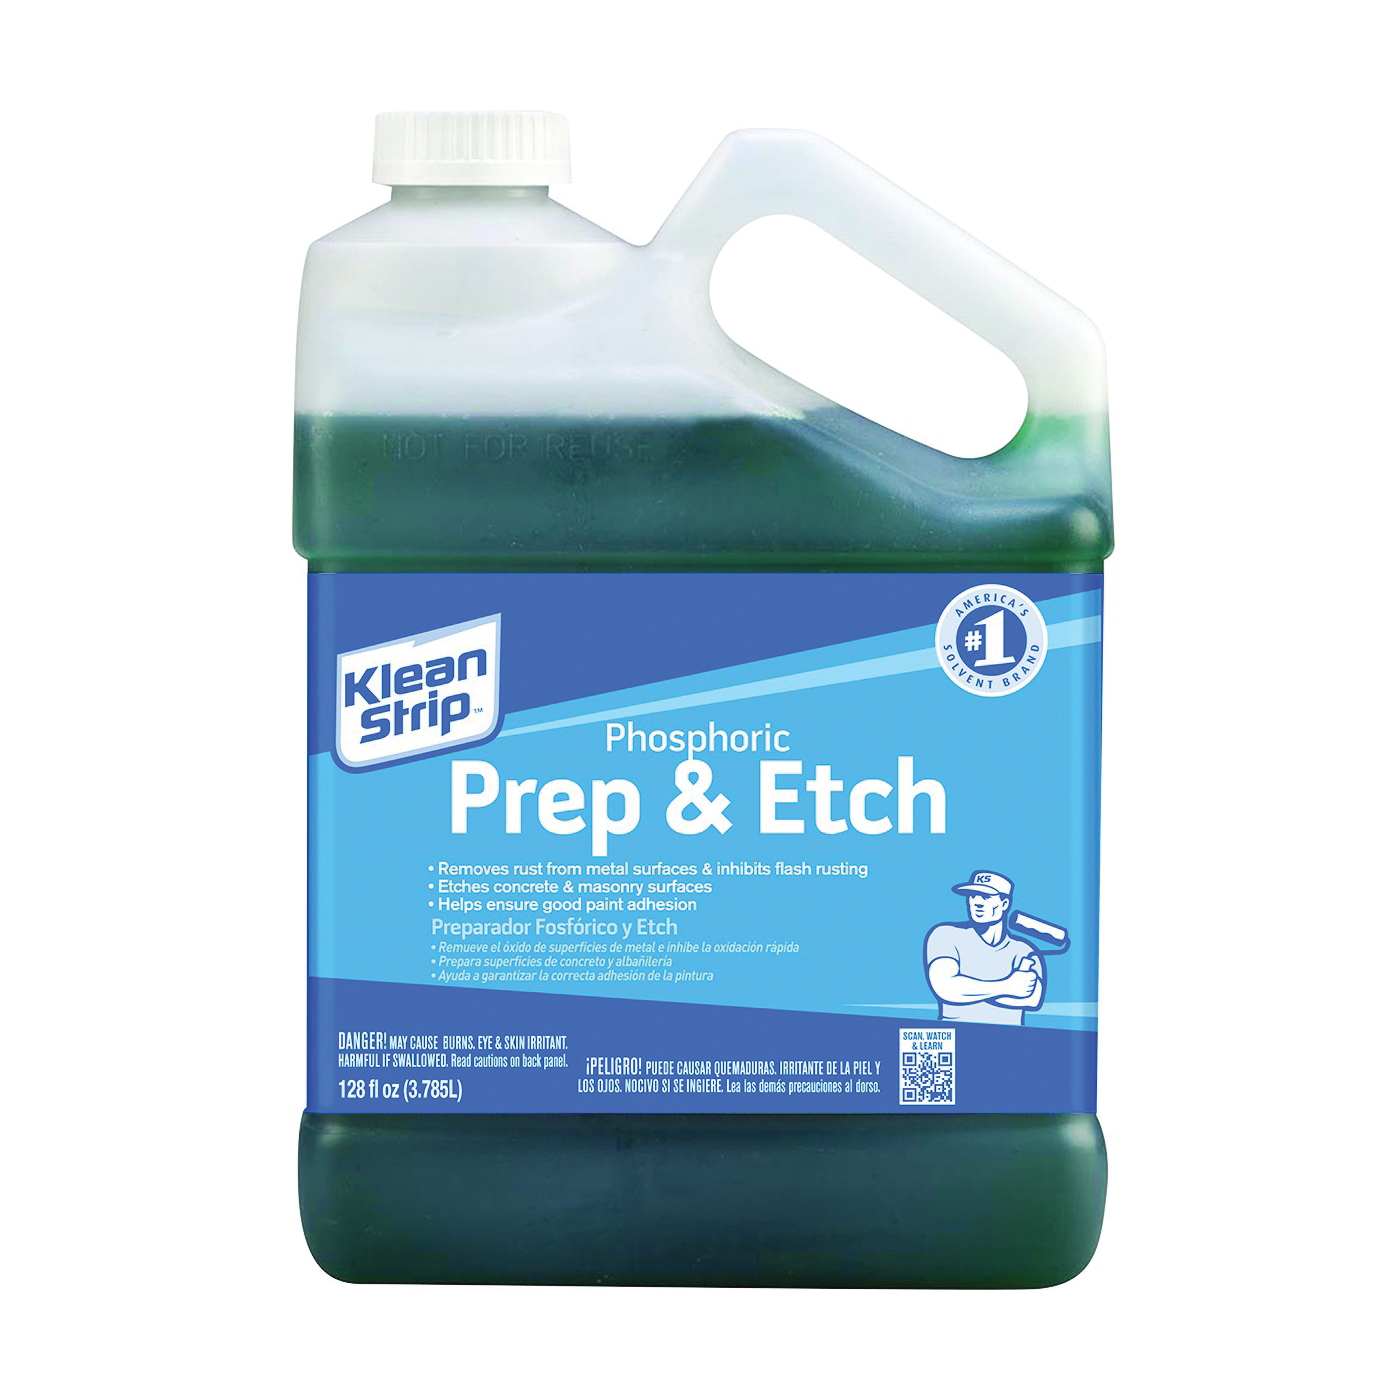 Picture of Klean Strip GKPA30220 Phosphoric Prep and Etch, Liquid, Green, 1.25 gal, Can